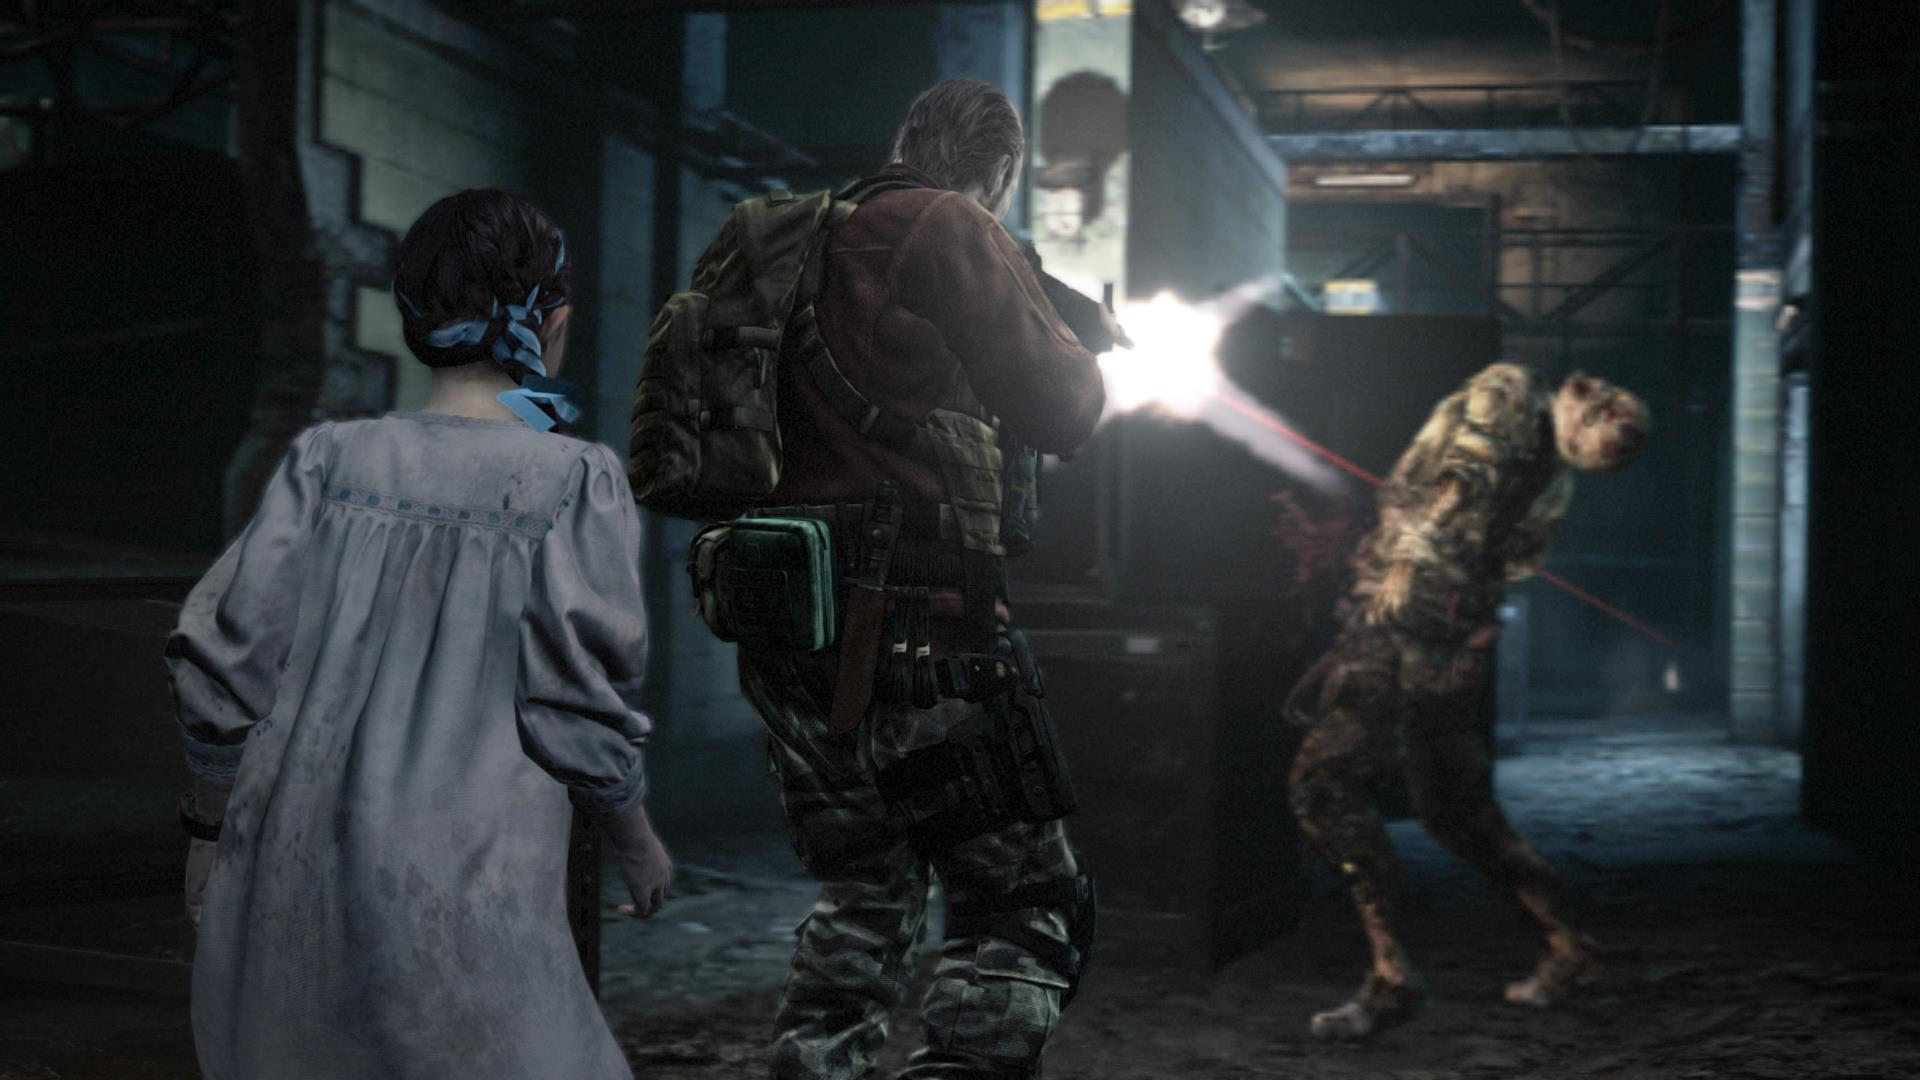 Review Resident Evil Revelations 2 Episode 1 Ps4 That Switch Revelation English Us Games Videogame Blog